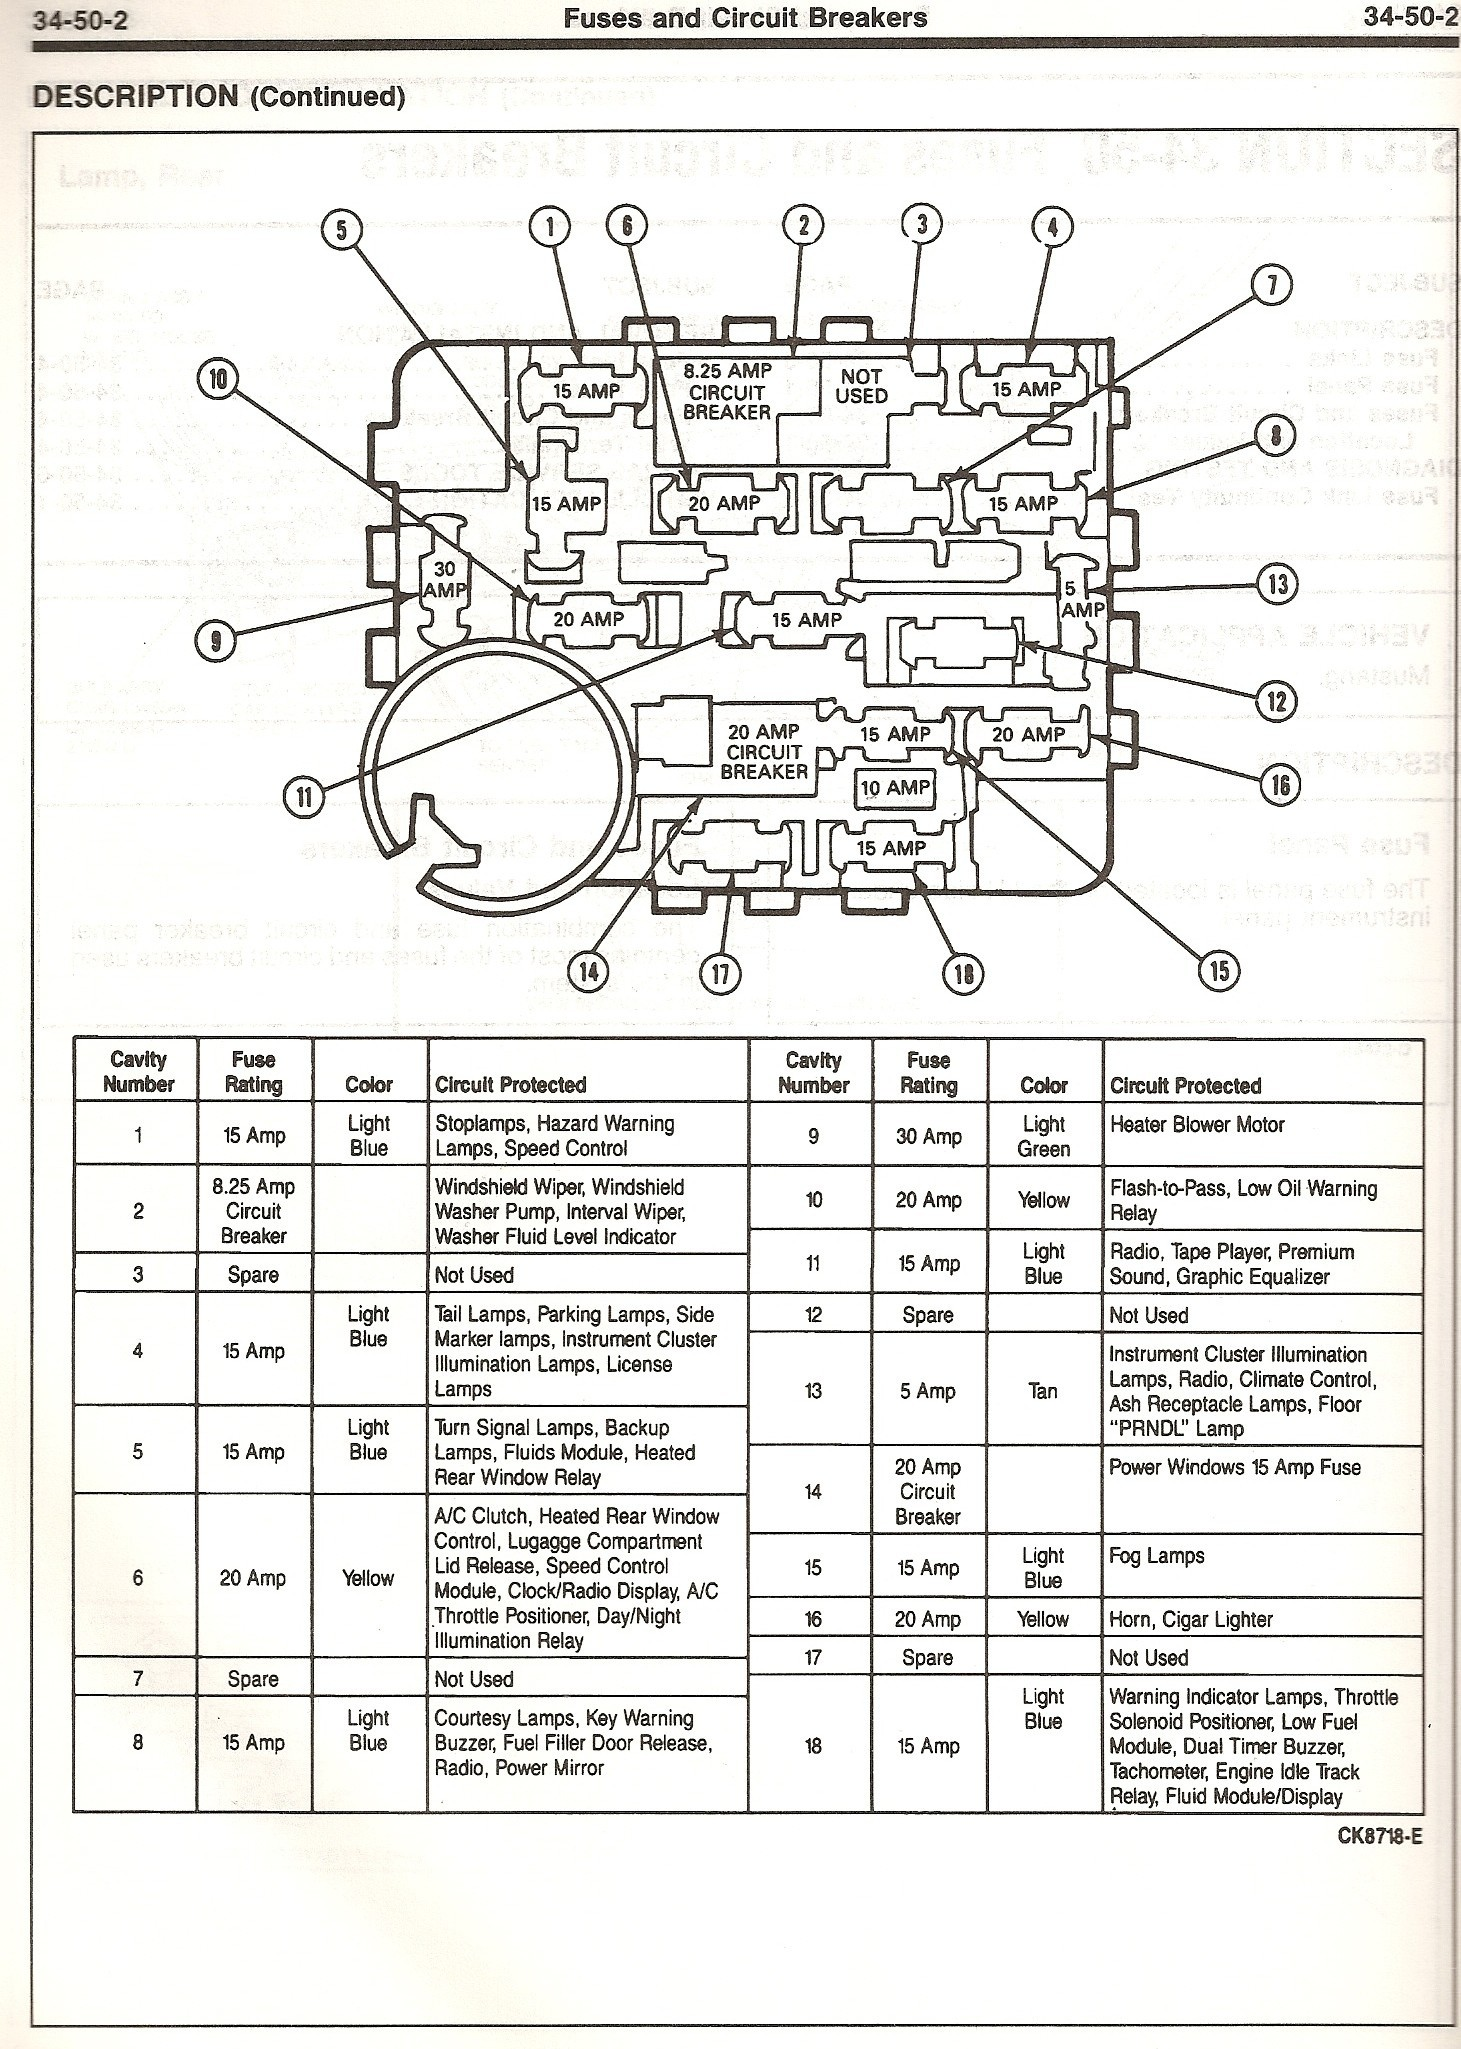 Ford Ranger 4 0 Engine Diagram 1997 Spark Plug Wiring 13 Pin Socket 2001 Fuse Of